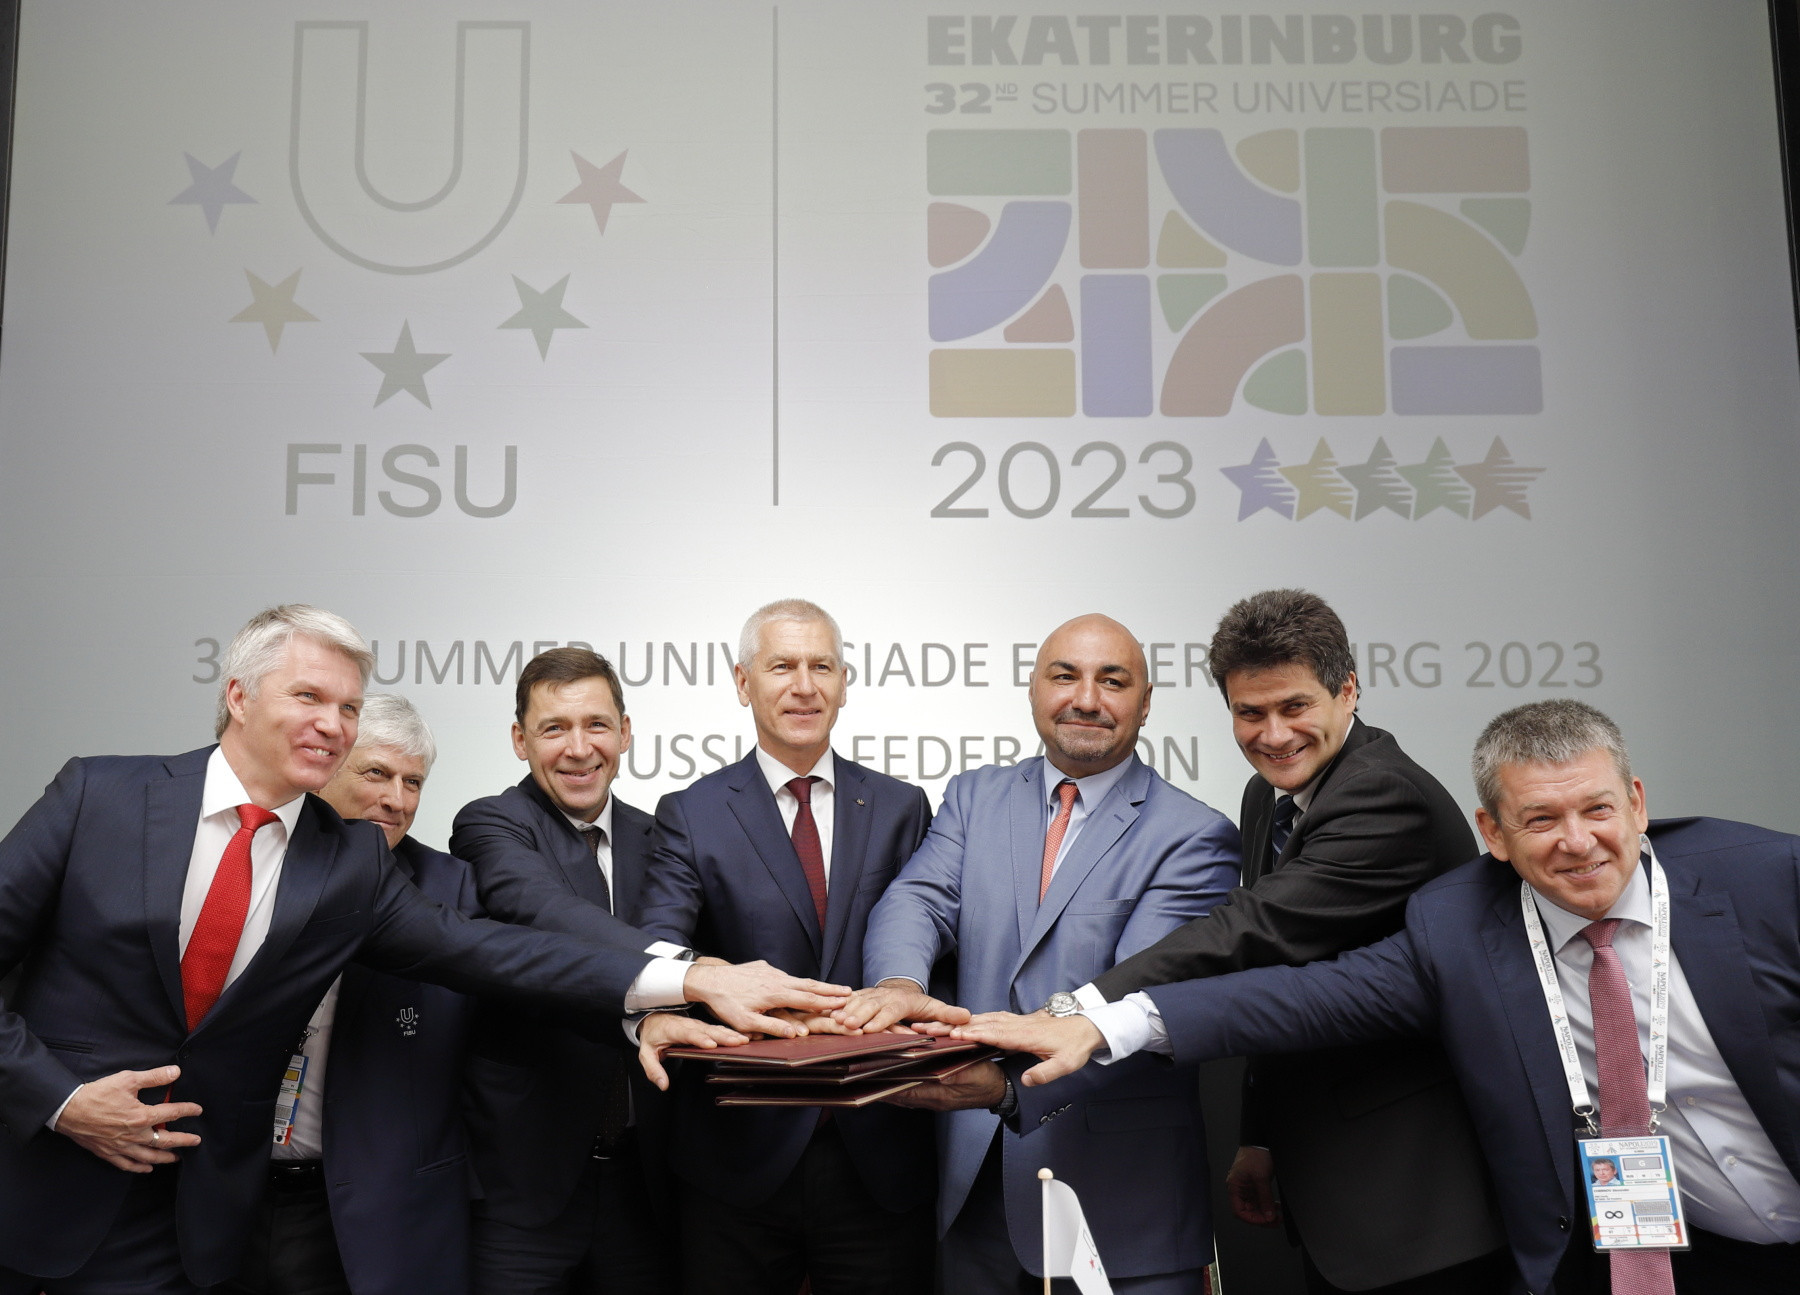 Yekaterinburg was awarded the 2023 Summer Universiade by the International University Sports Federation Executive Committee during a meeting in Naples in June ©FISU